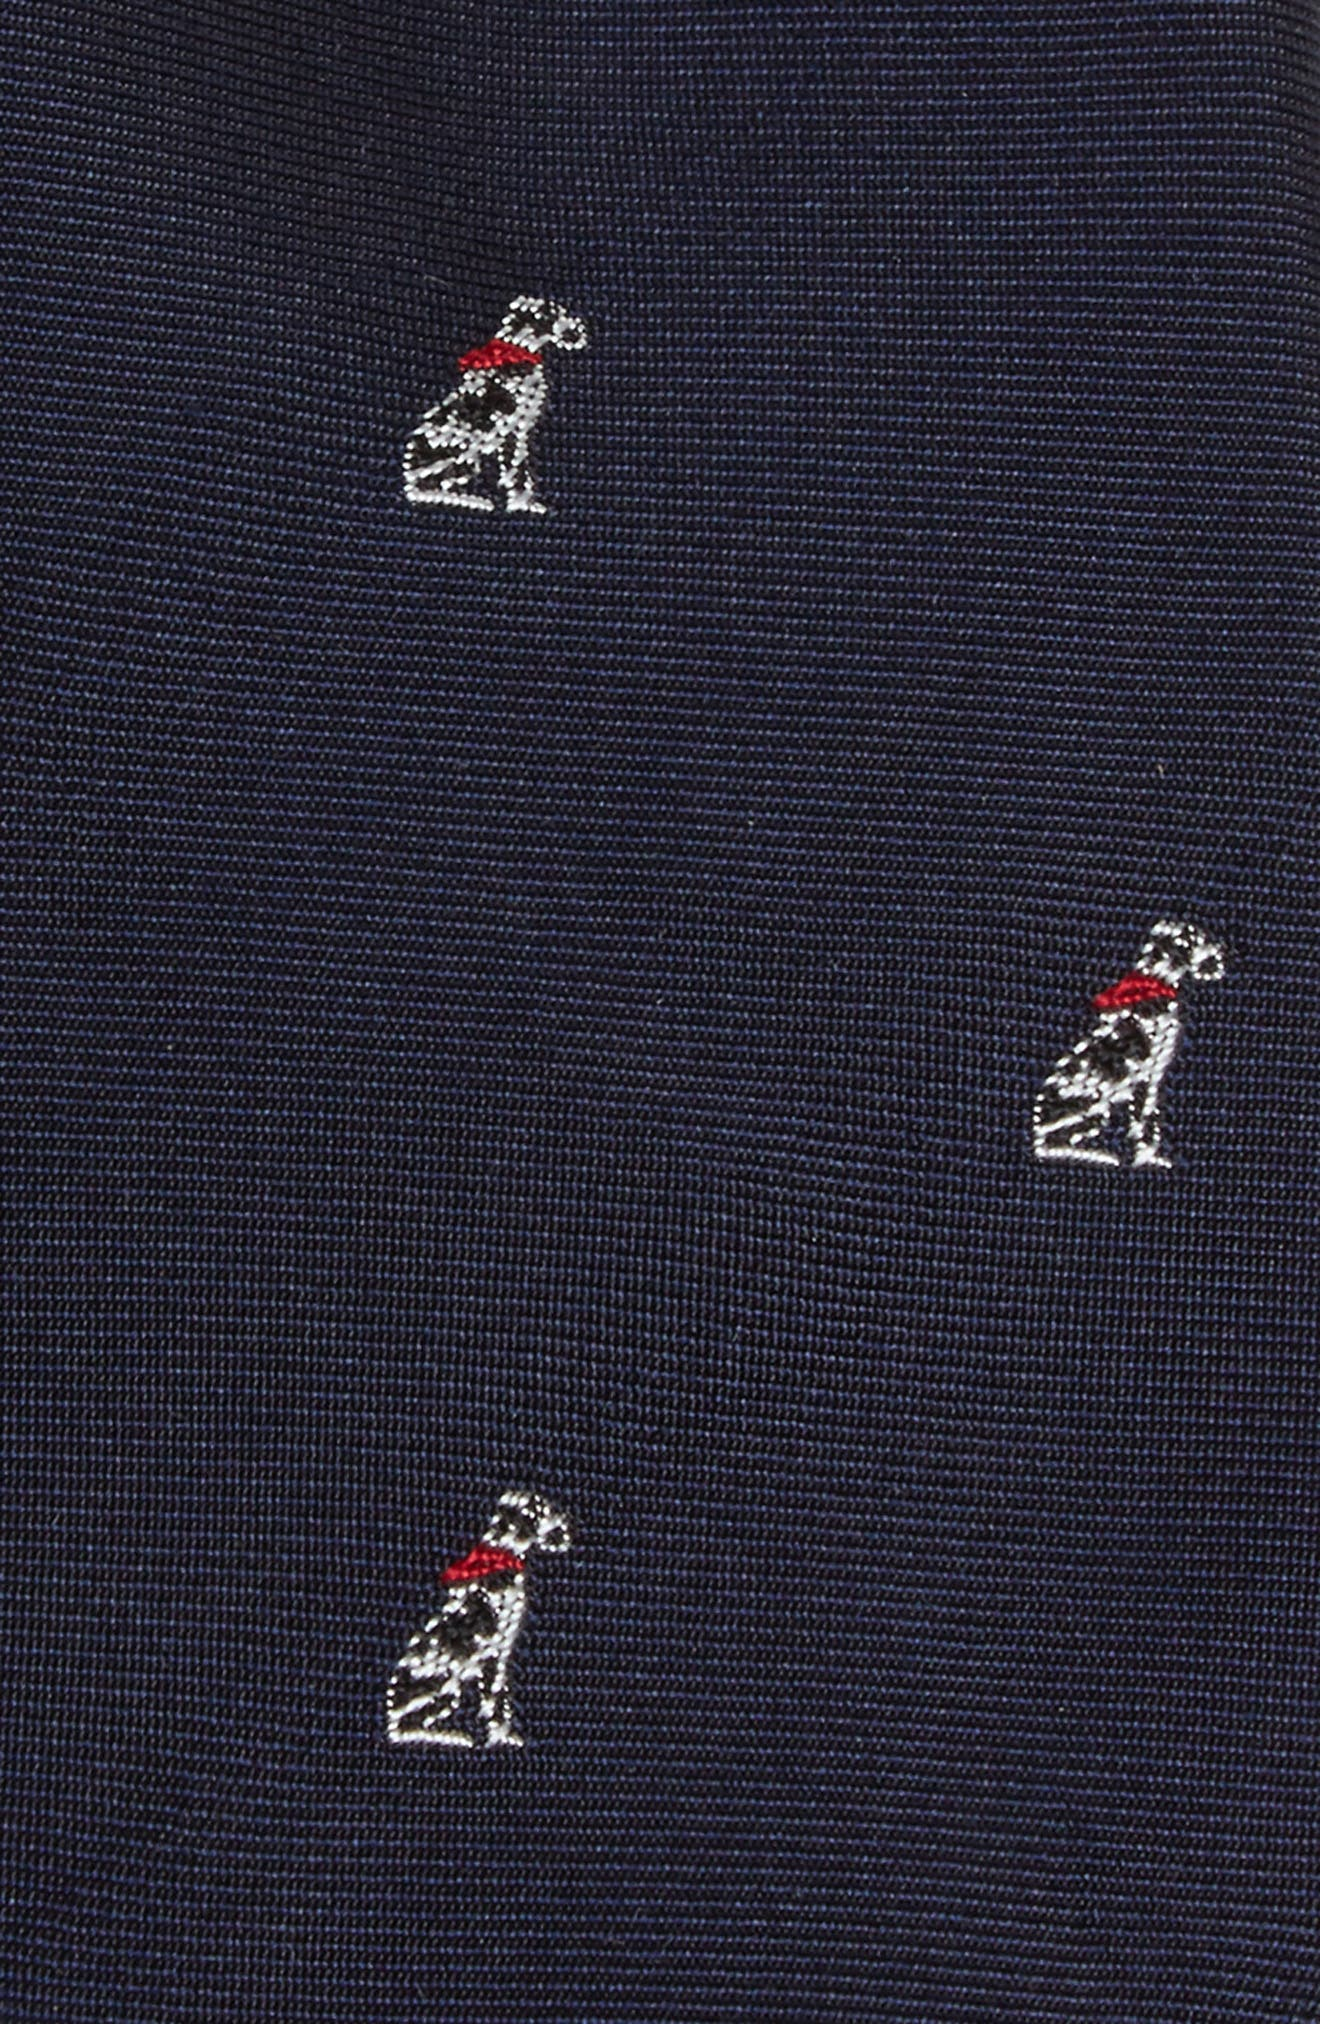 Embroidered Dog Silk Tie,                             Alternate thumbnail 2, color,                             410